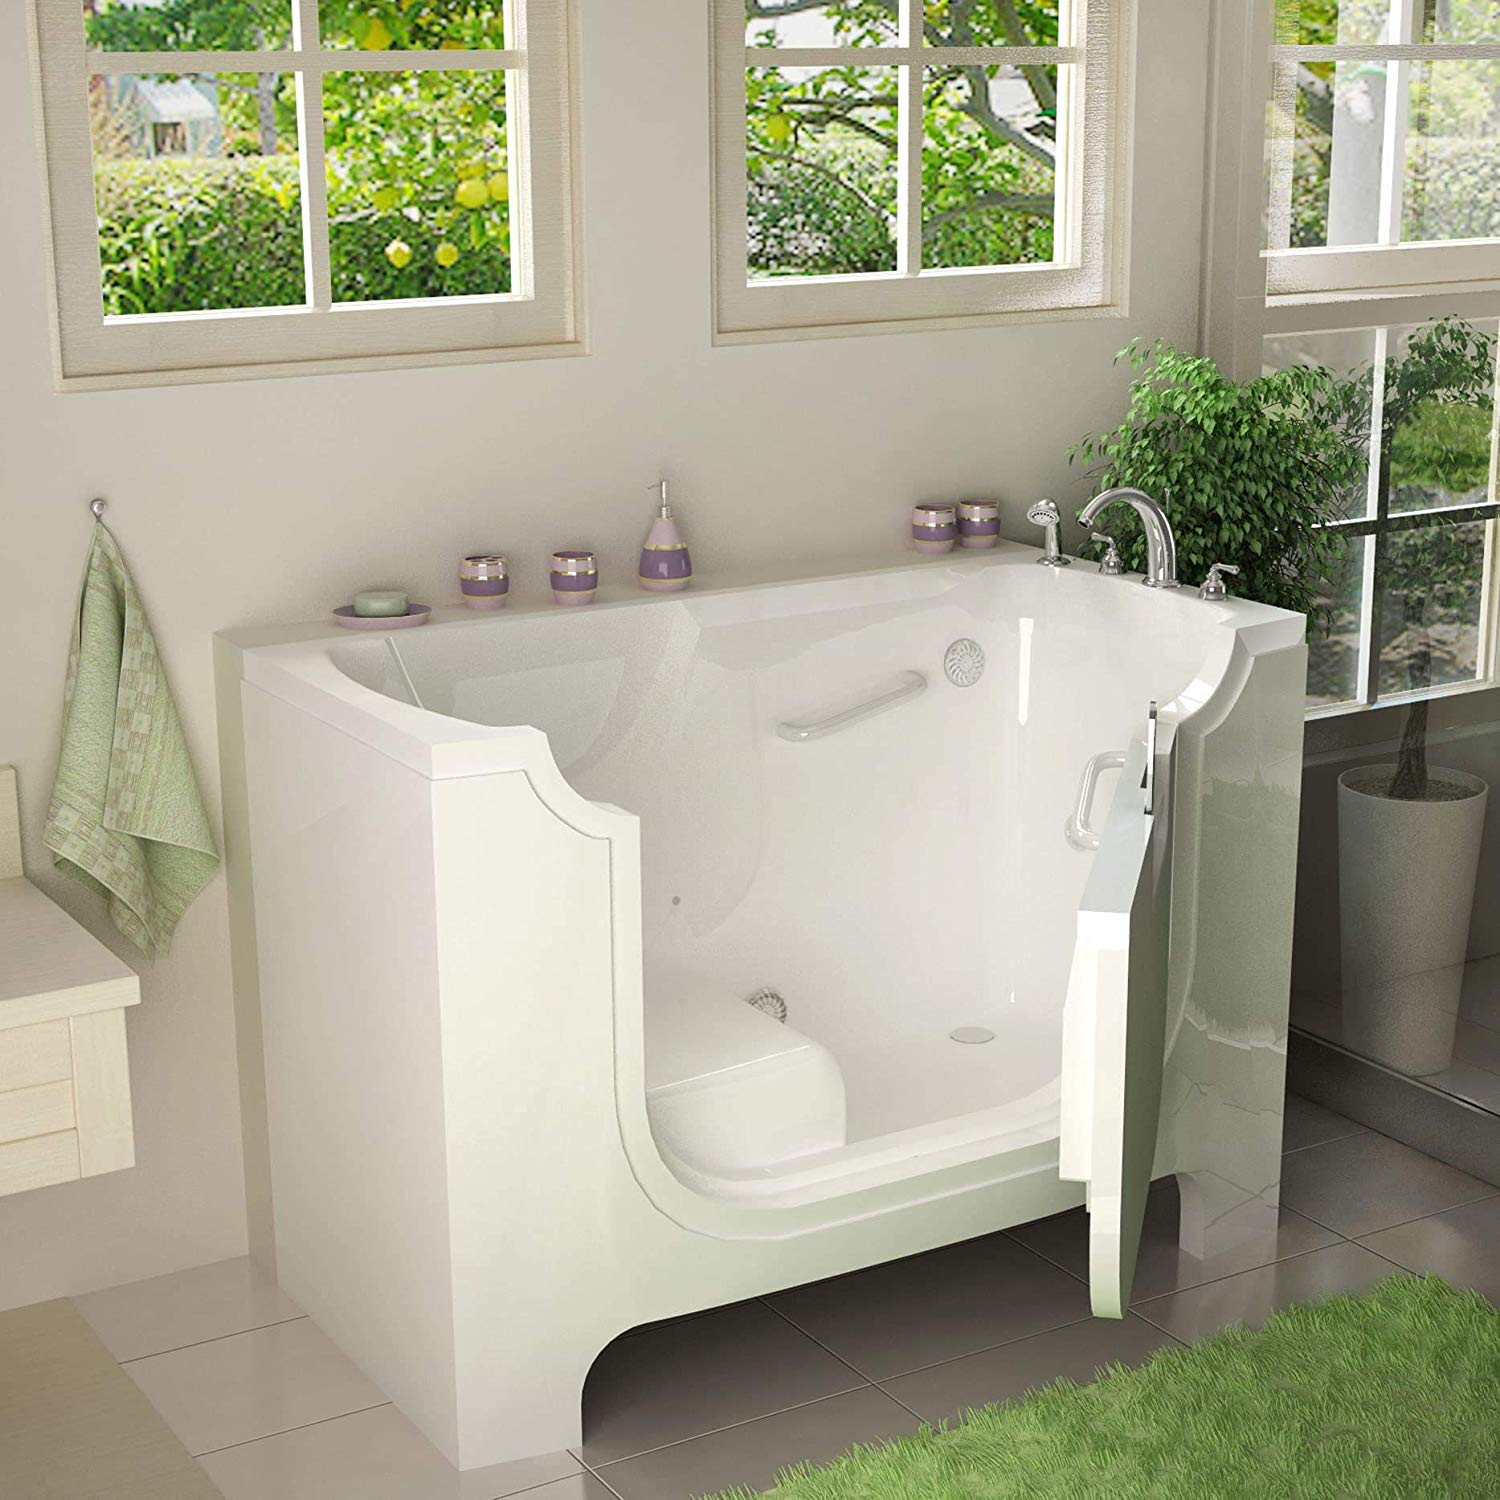 wheelchair-accessible-walk-in-bathtub-with-safety-rails-and-hydrotherapy-air-jets